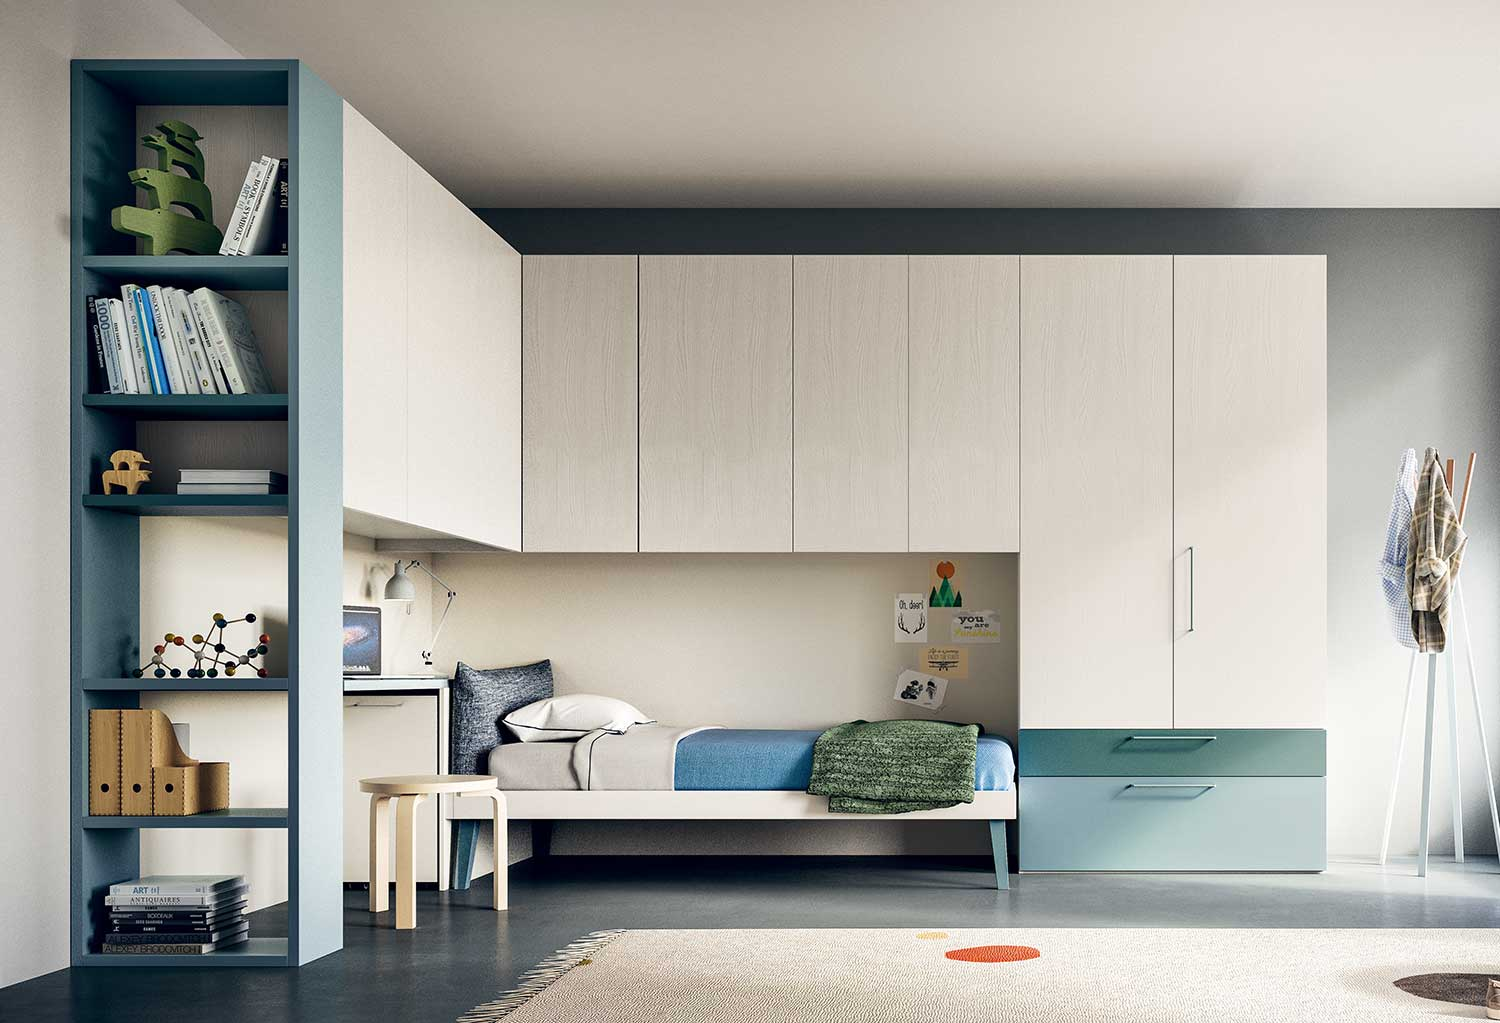 Corner overbed wardrobe Start allows for endless compositions for kids' or adults' bedrooms, guest or laundry rooms